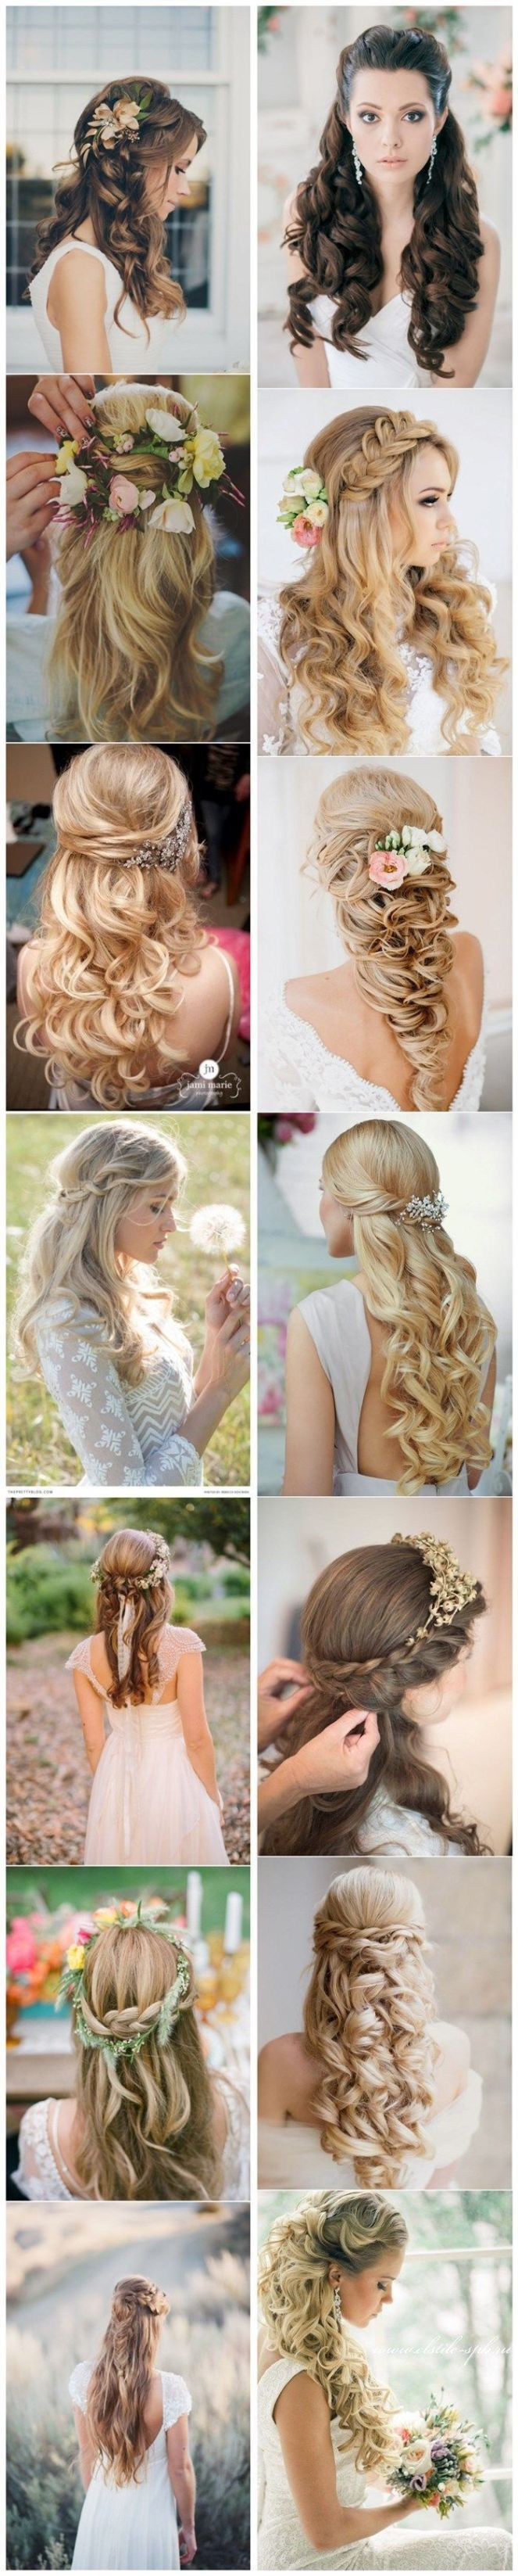 15 Stunning Half Up Half Down Wedding Hairstyles with Tutorial.: